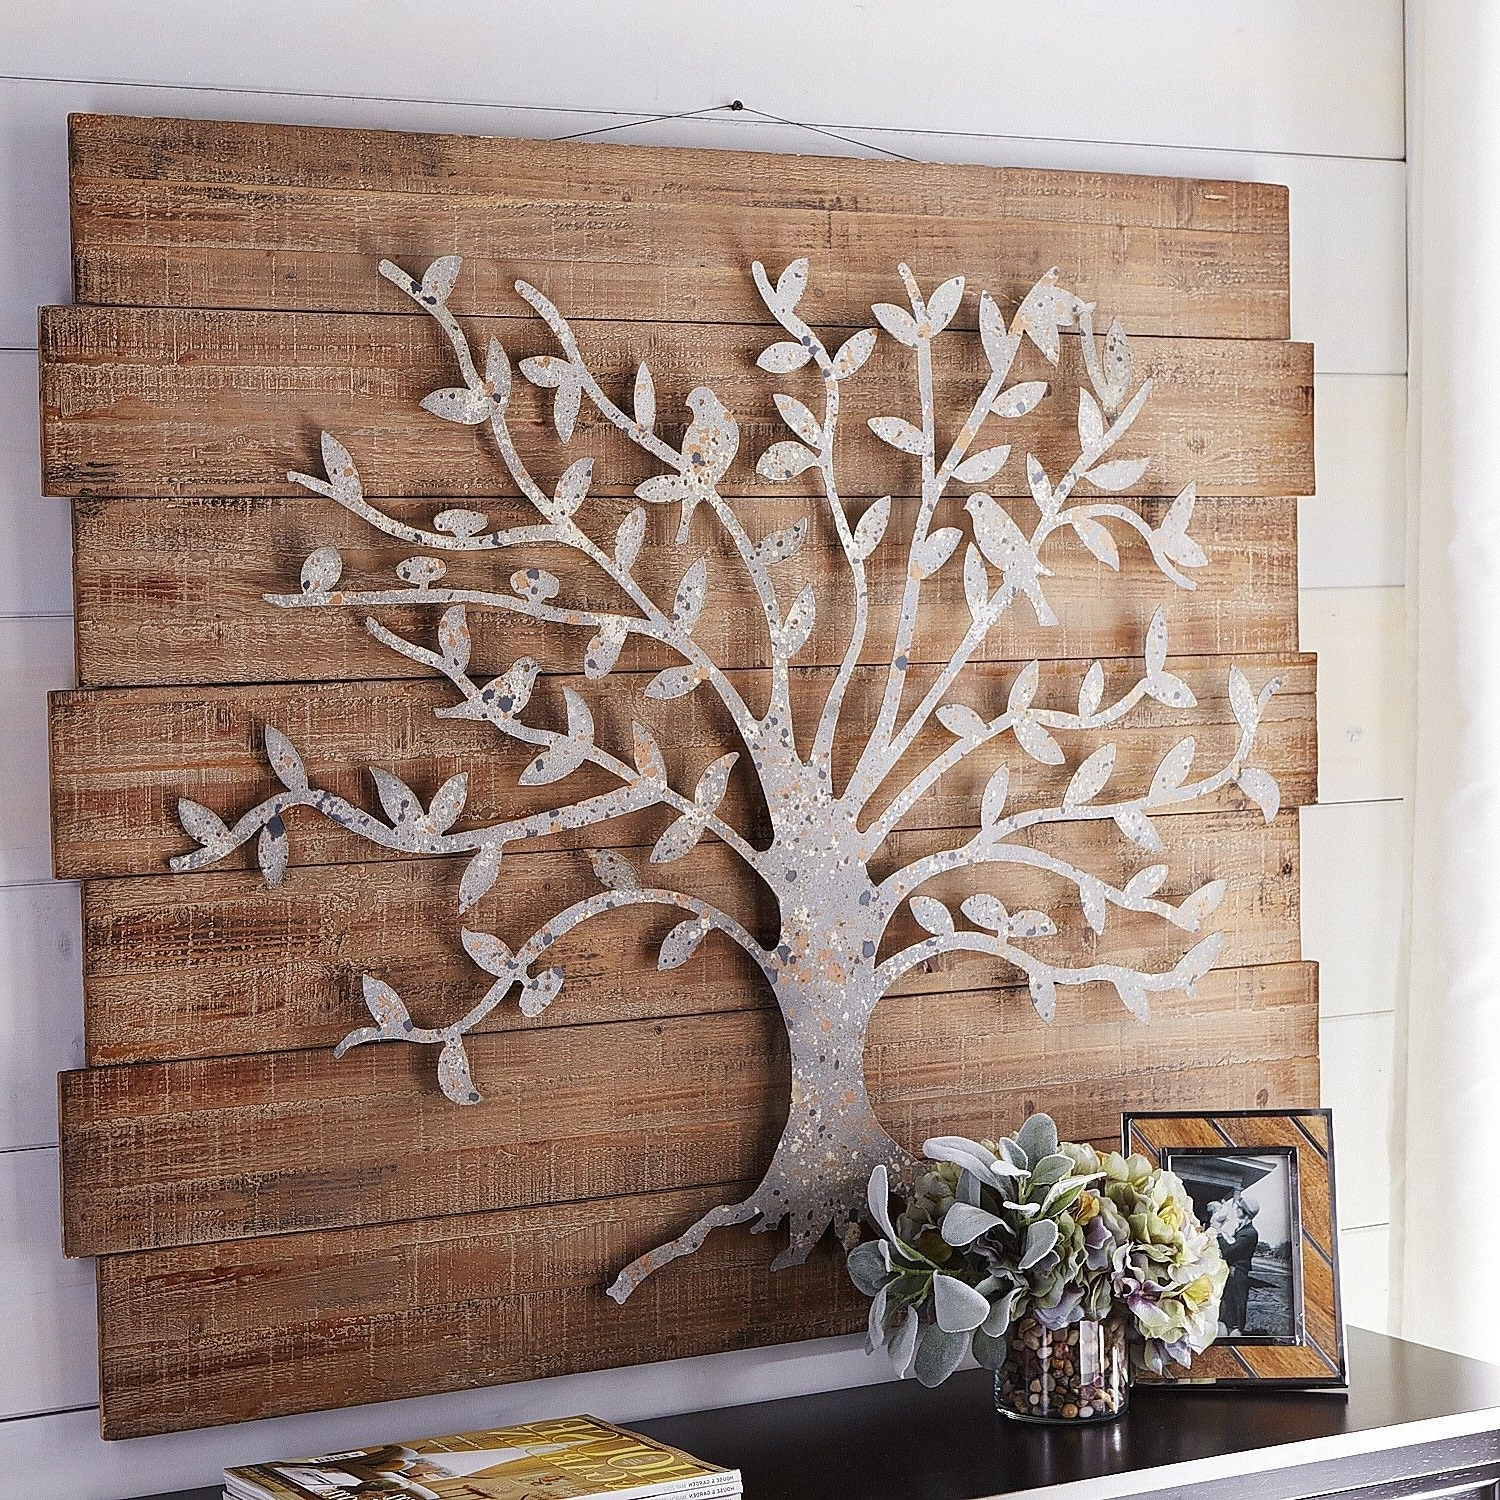 Pier 1 Imports Regarding Most Current Wood And Metal Wall Art (View 16 of 20)